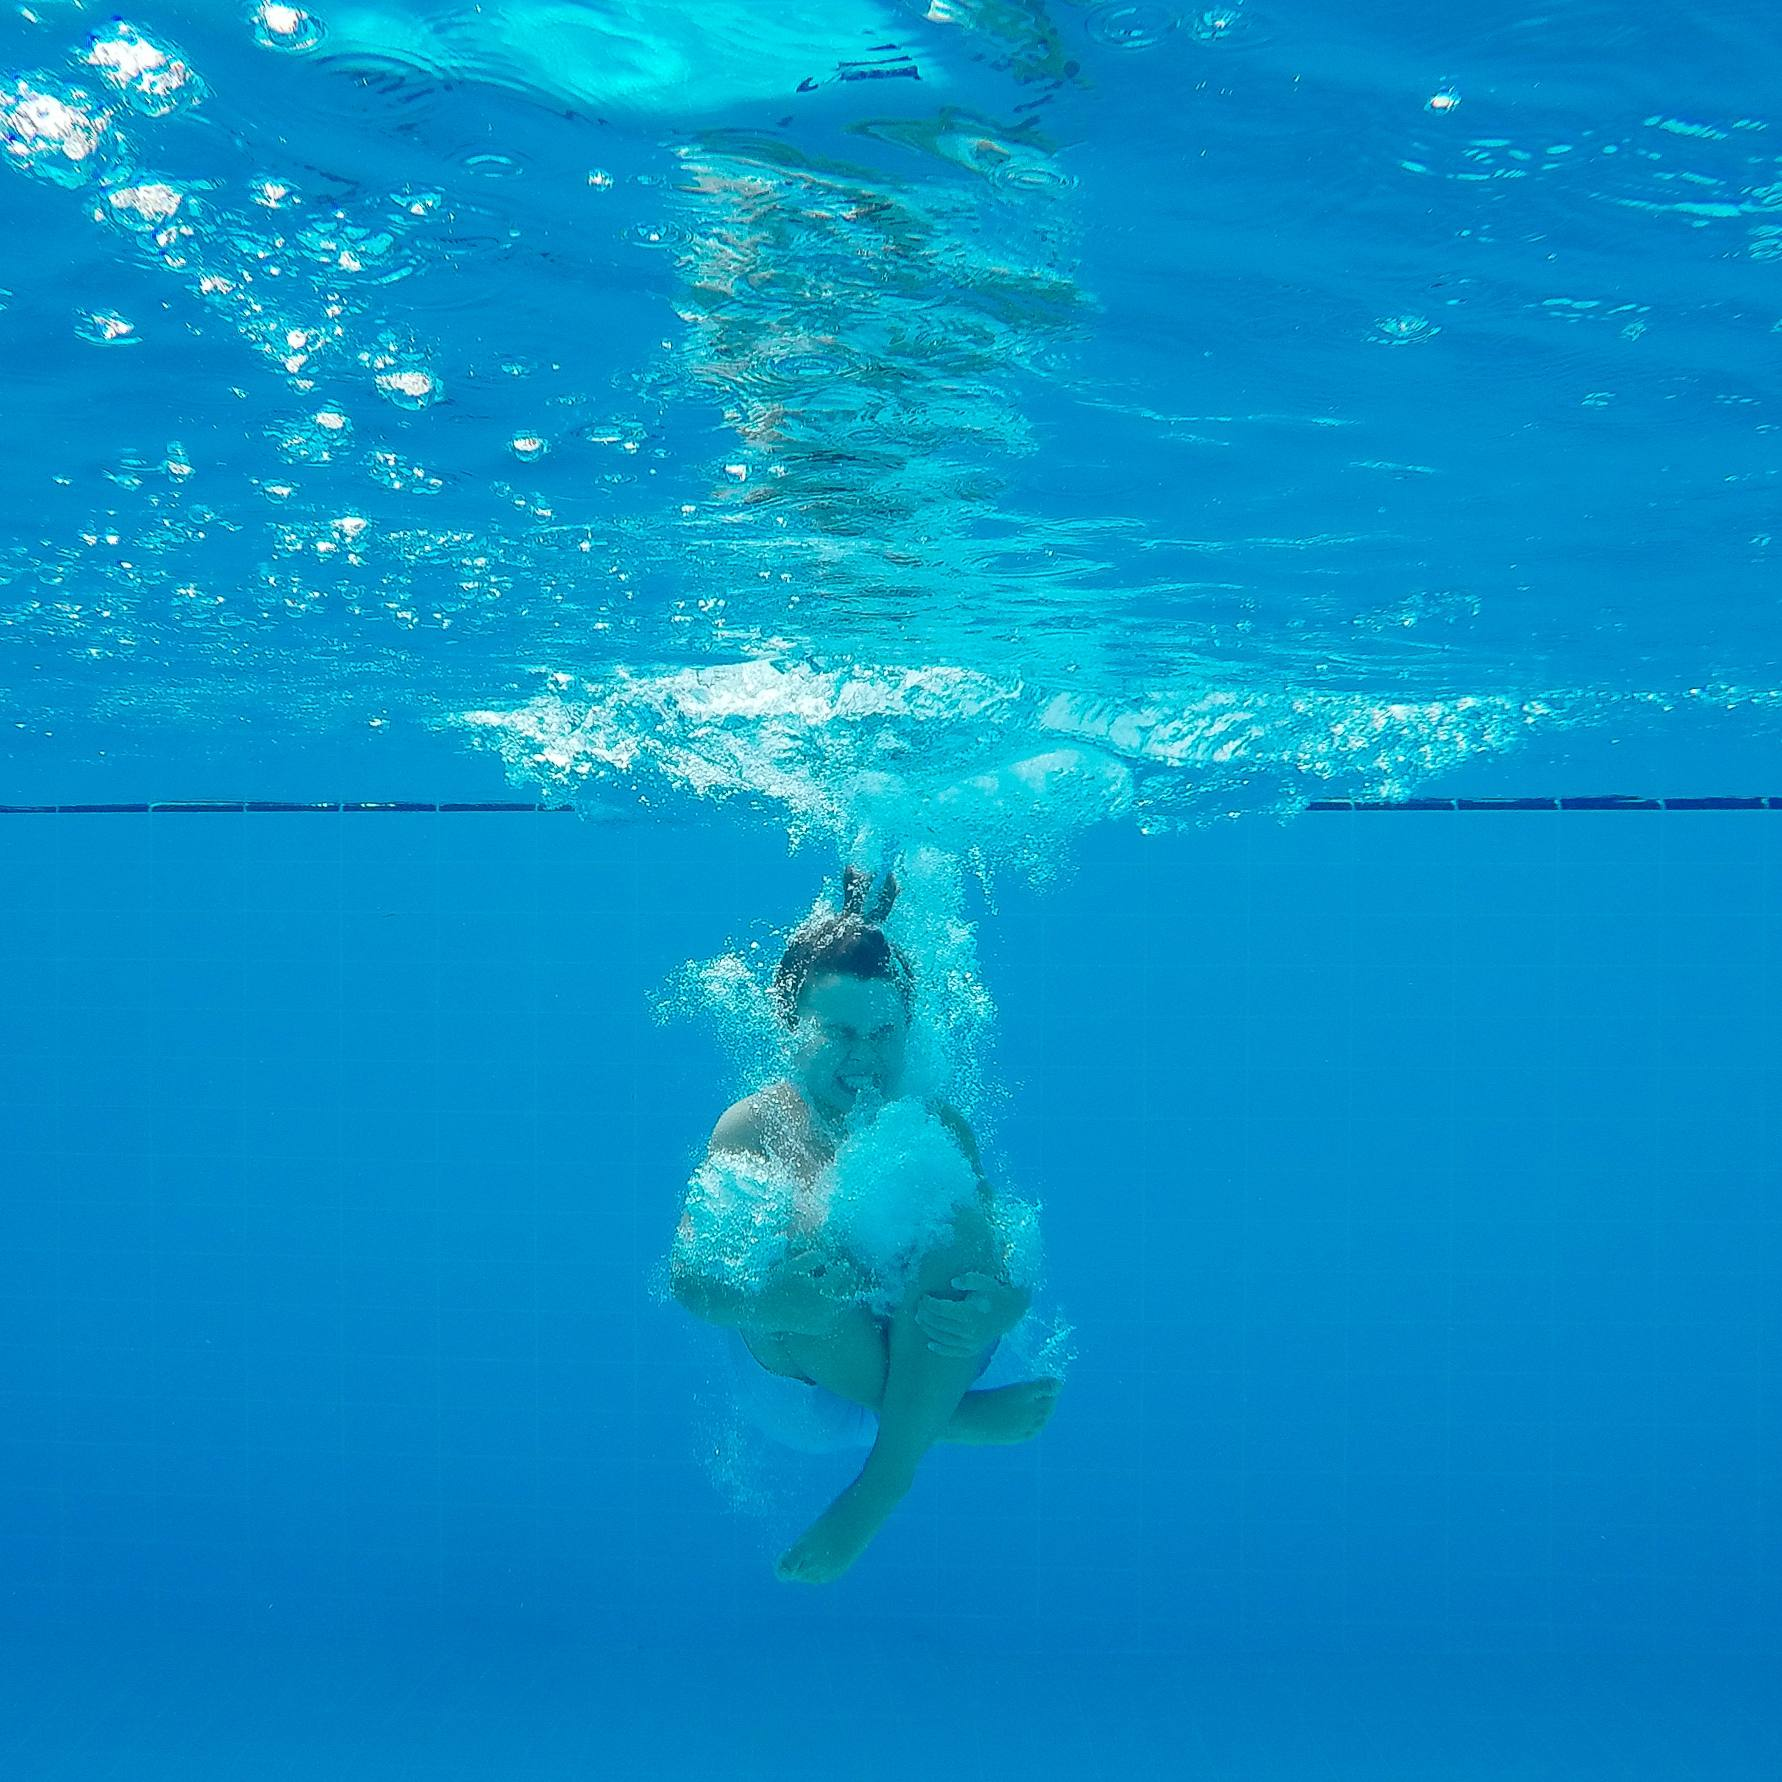 a little boy jumping or splashing into the water, underwater of a swimming pool